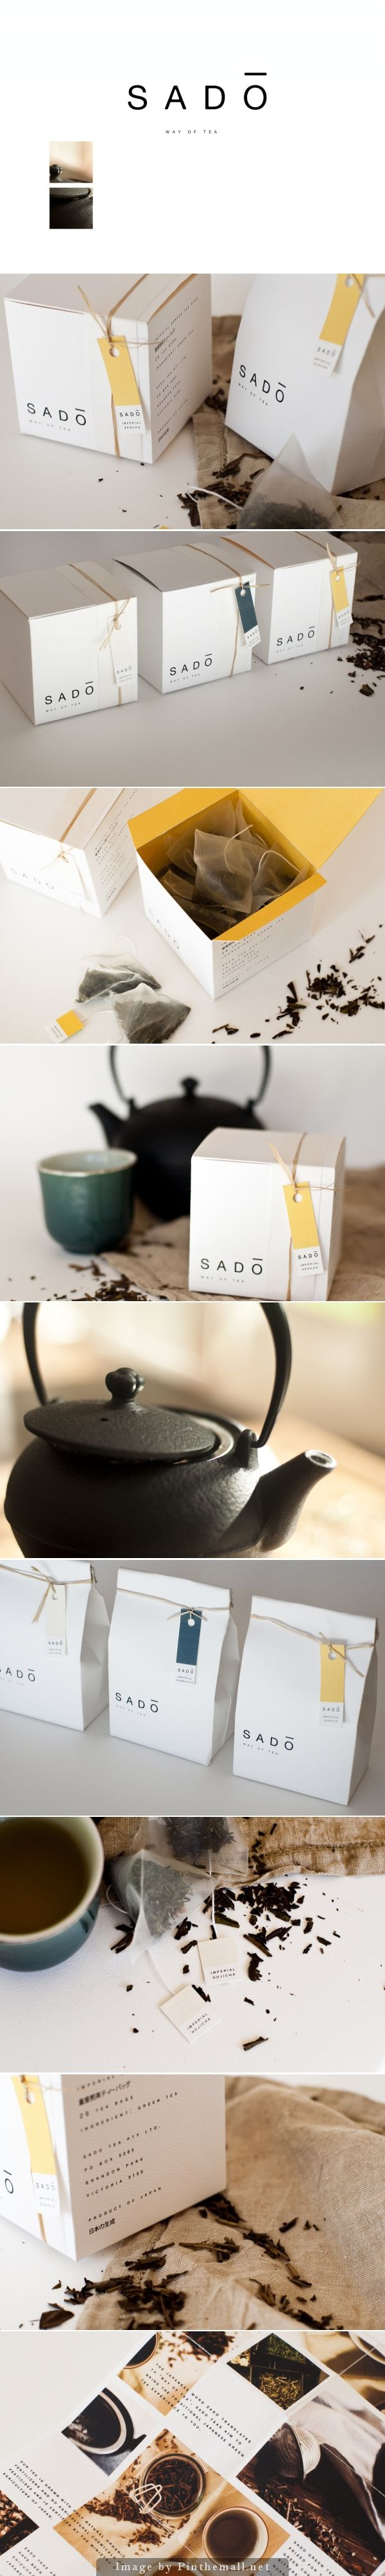 Got time time for some Sato Tea #packaging and design inspiration by Emma Goddard